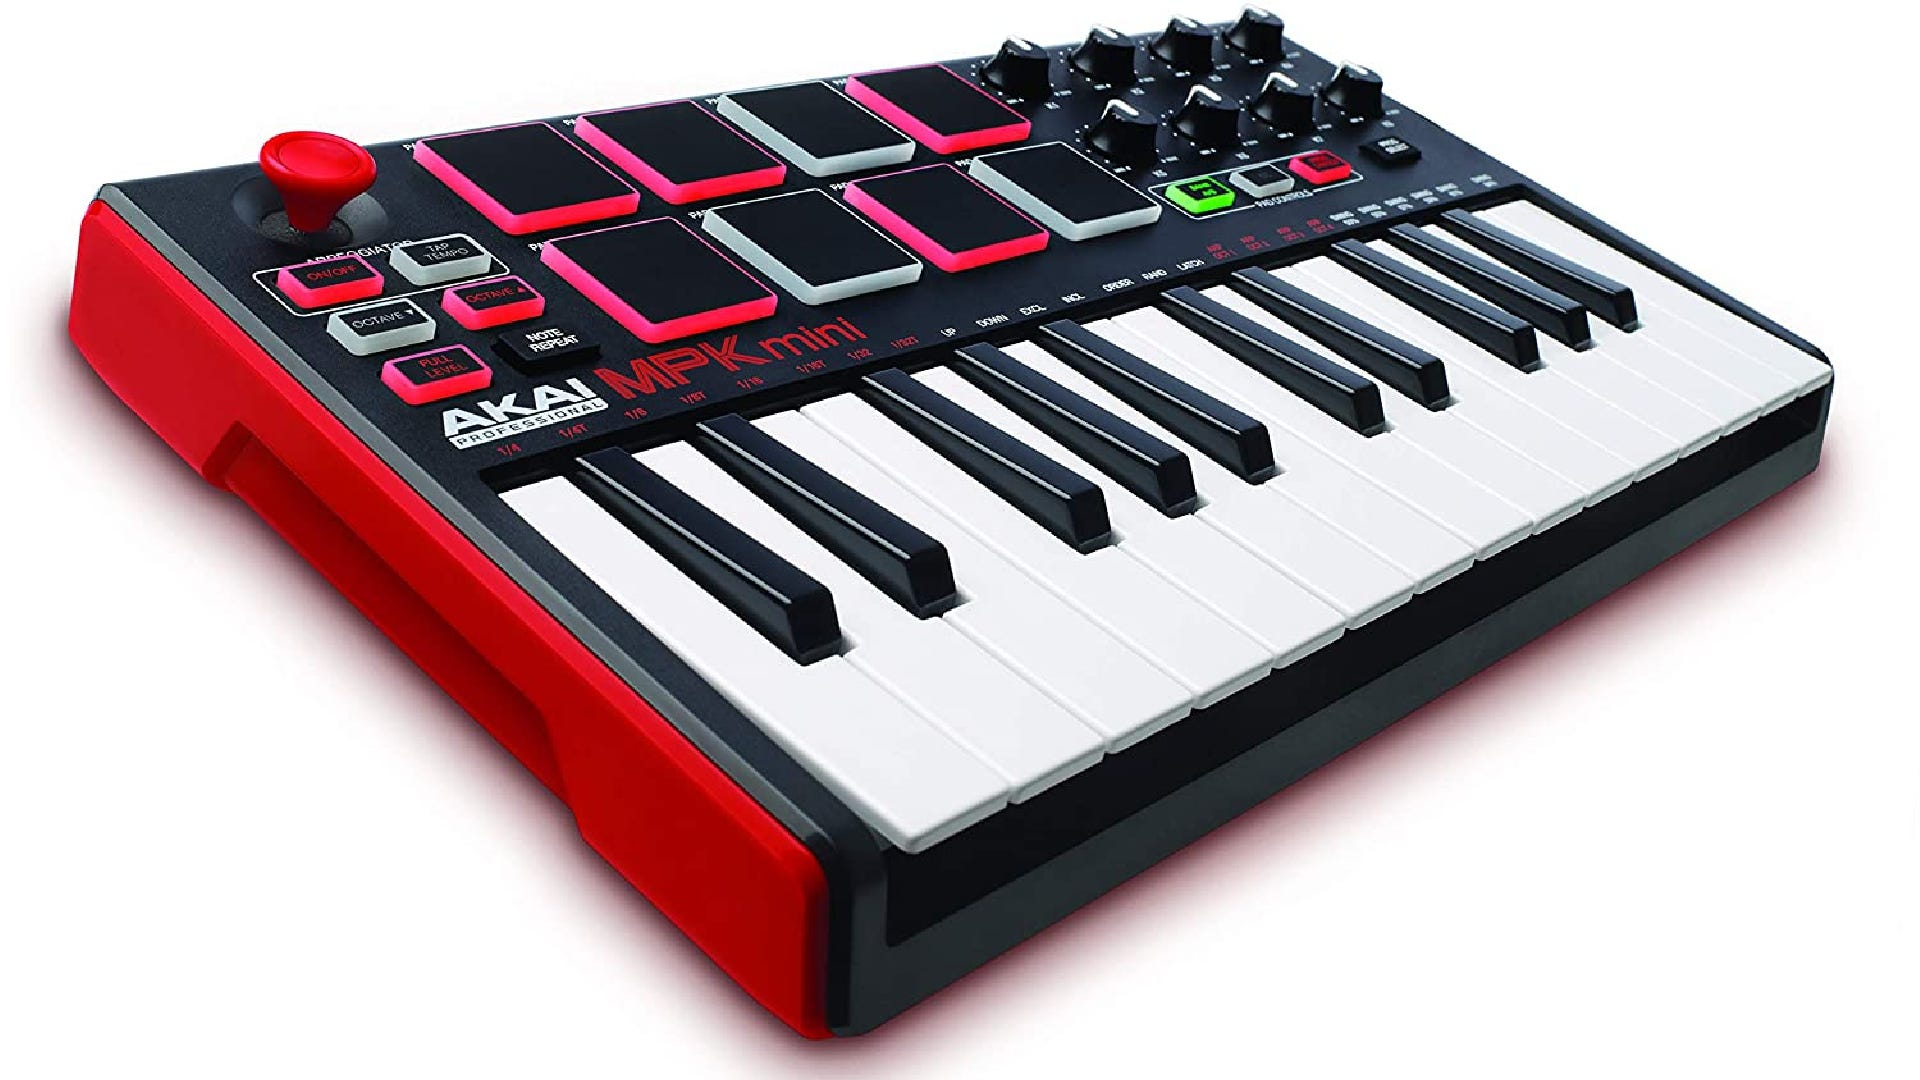 A compact MIDI keyboard with 8 multi-colored pads, 25 piano keys, and various knobs, and illuminated buttons.